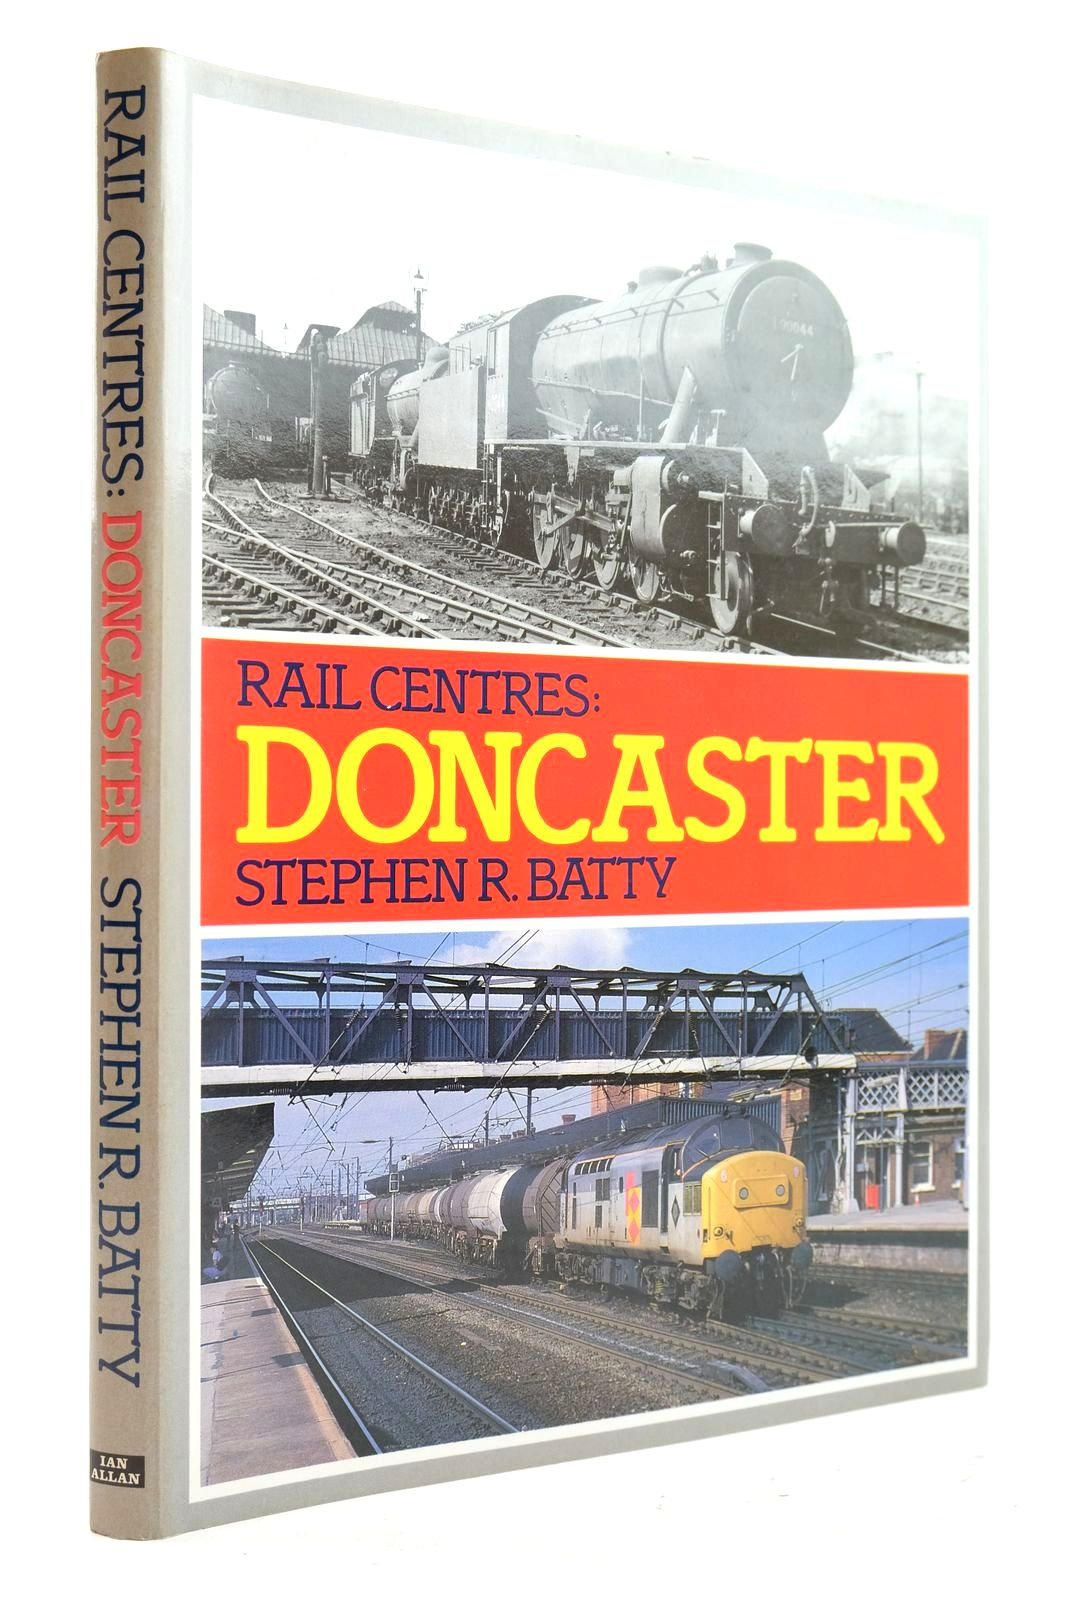 Photo of RAIL CENTRES: DONCASTER written by Batty, Stephen R. published by Ian Allan Ltd. (STOCK CODE: 2133031)  for sale by Stella & Rose's Books